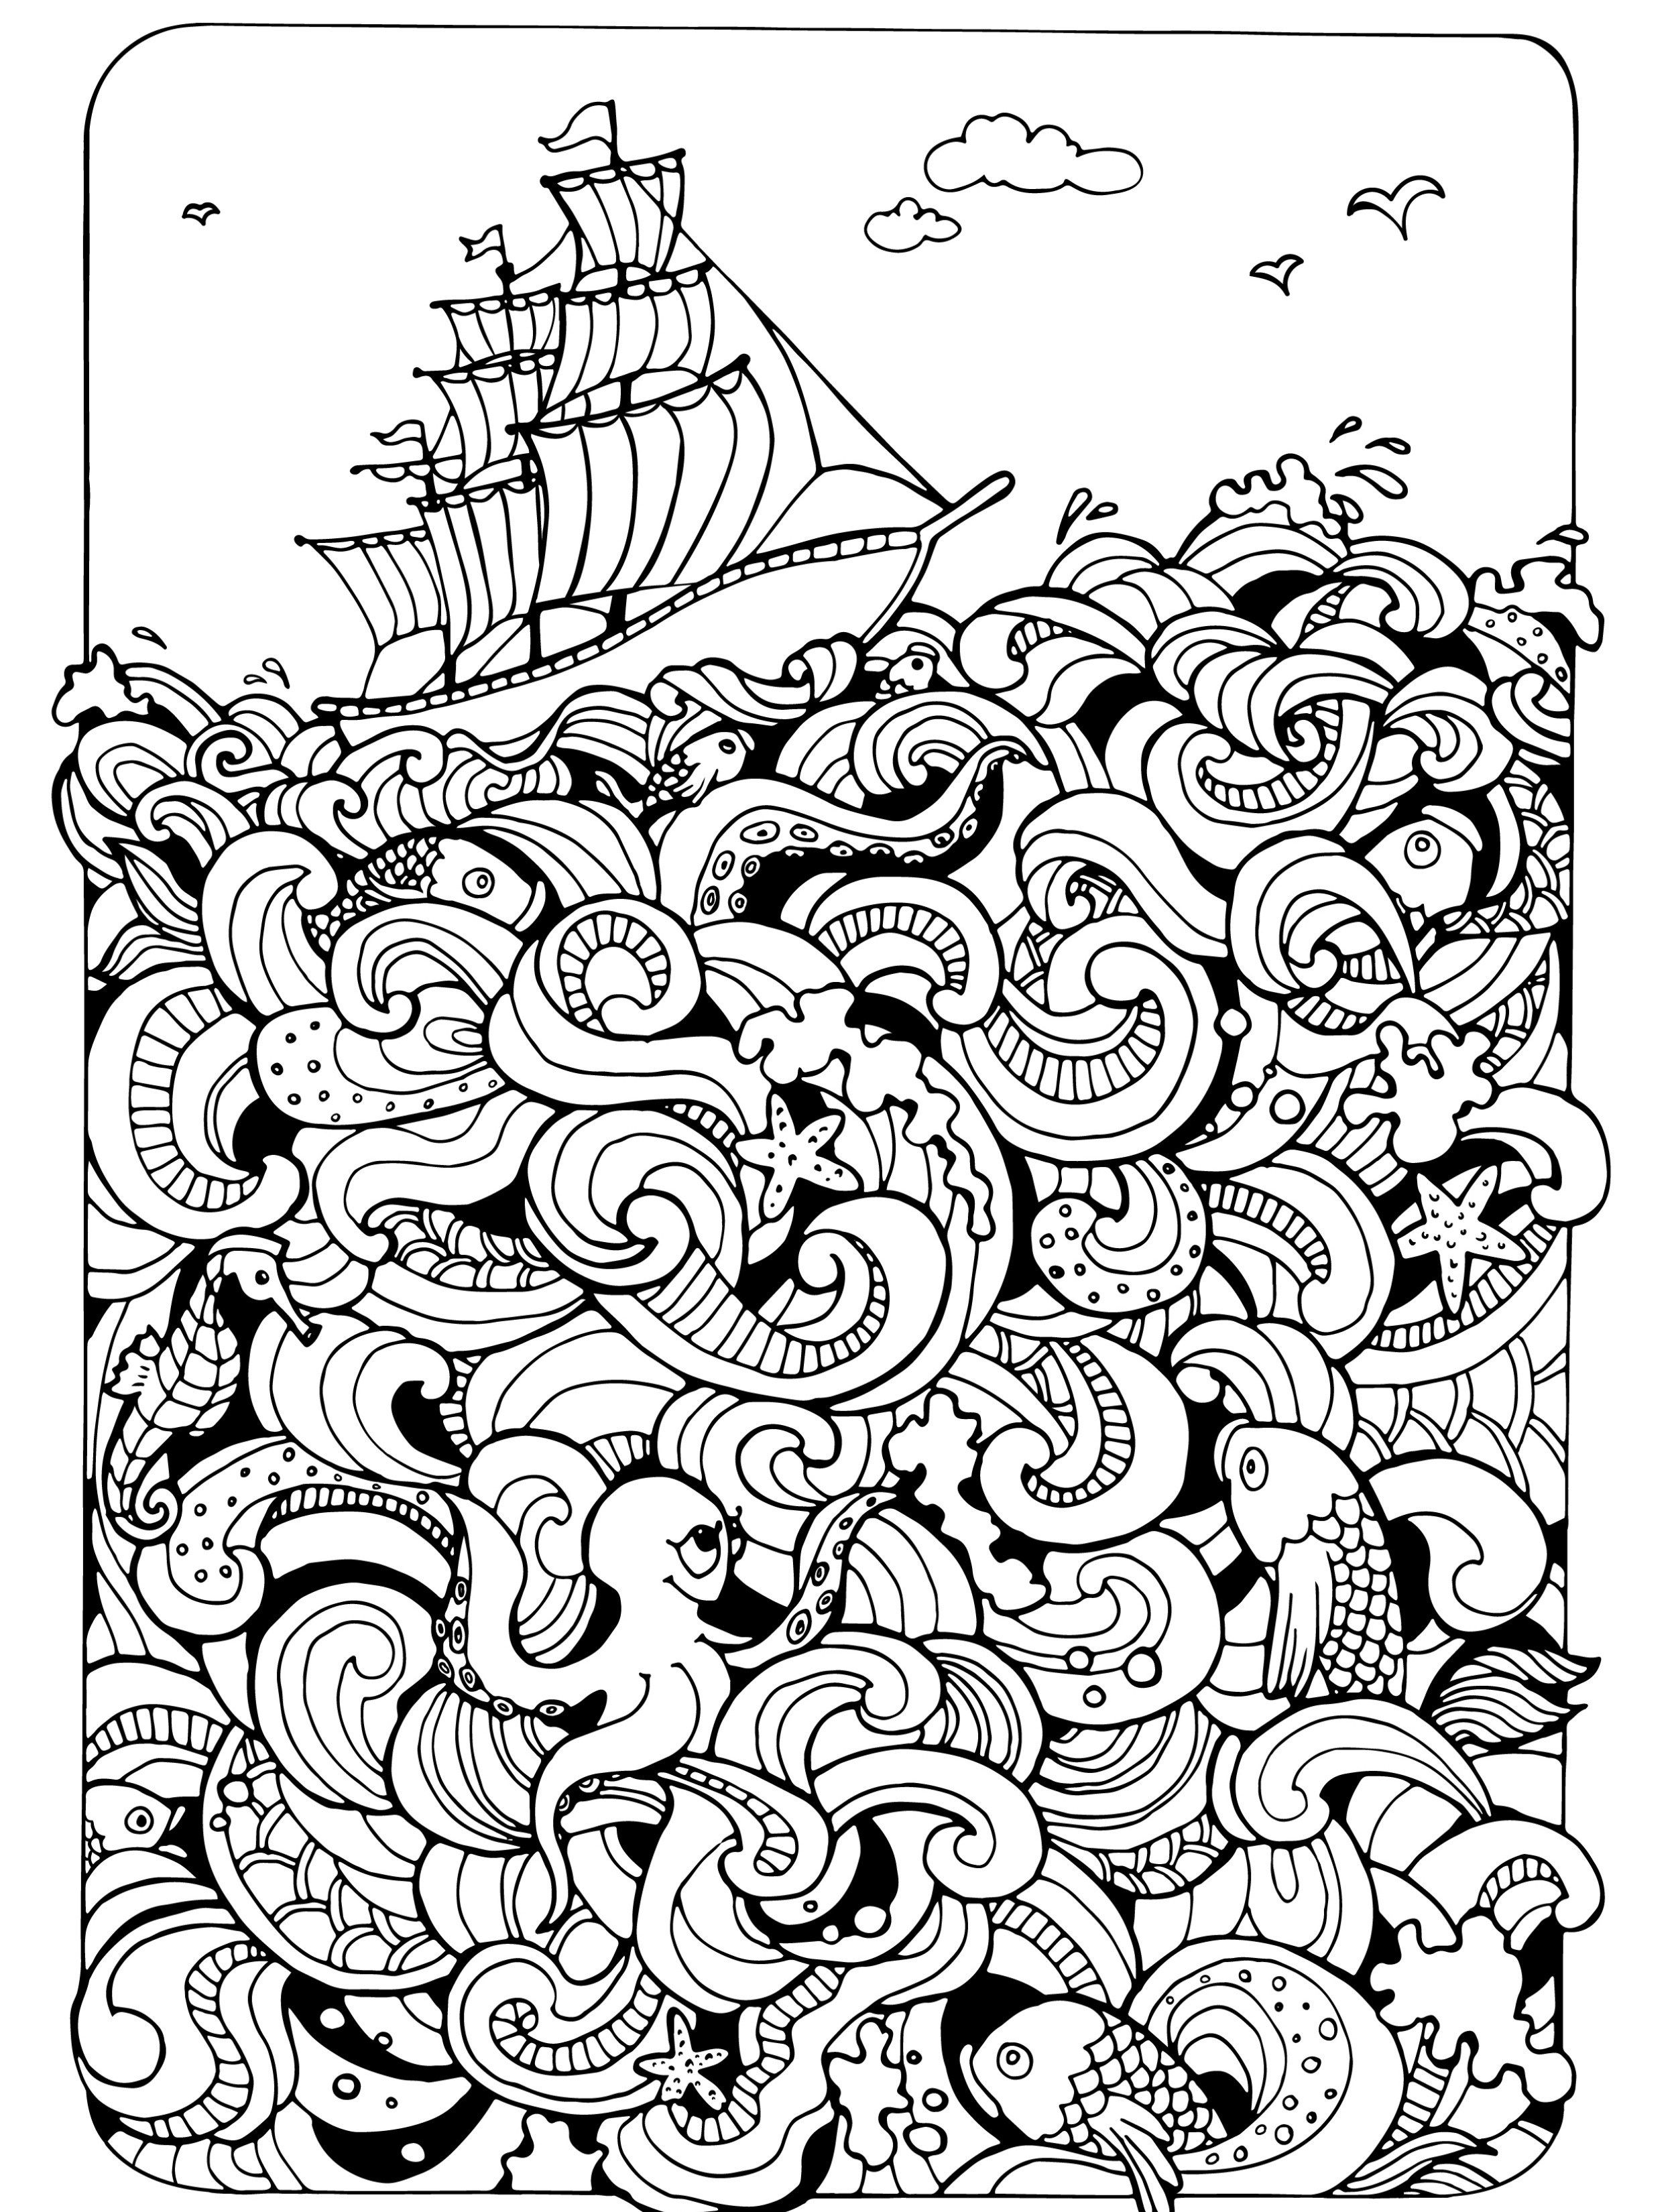 Boat on the Sea : Absurdly Whimsical Adult Coloring Page ...